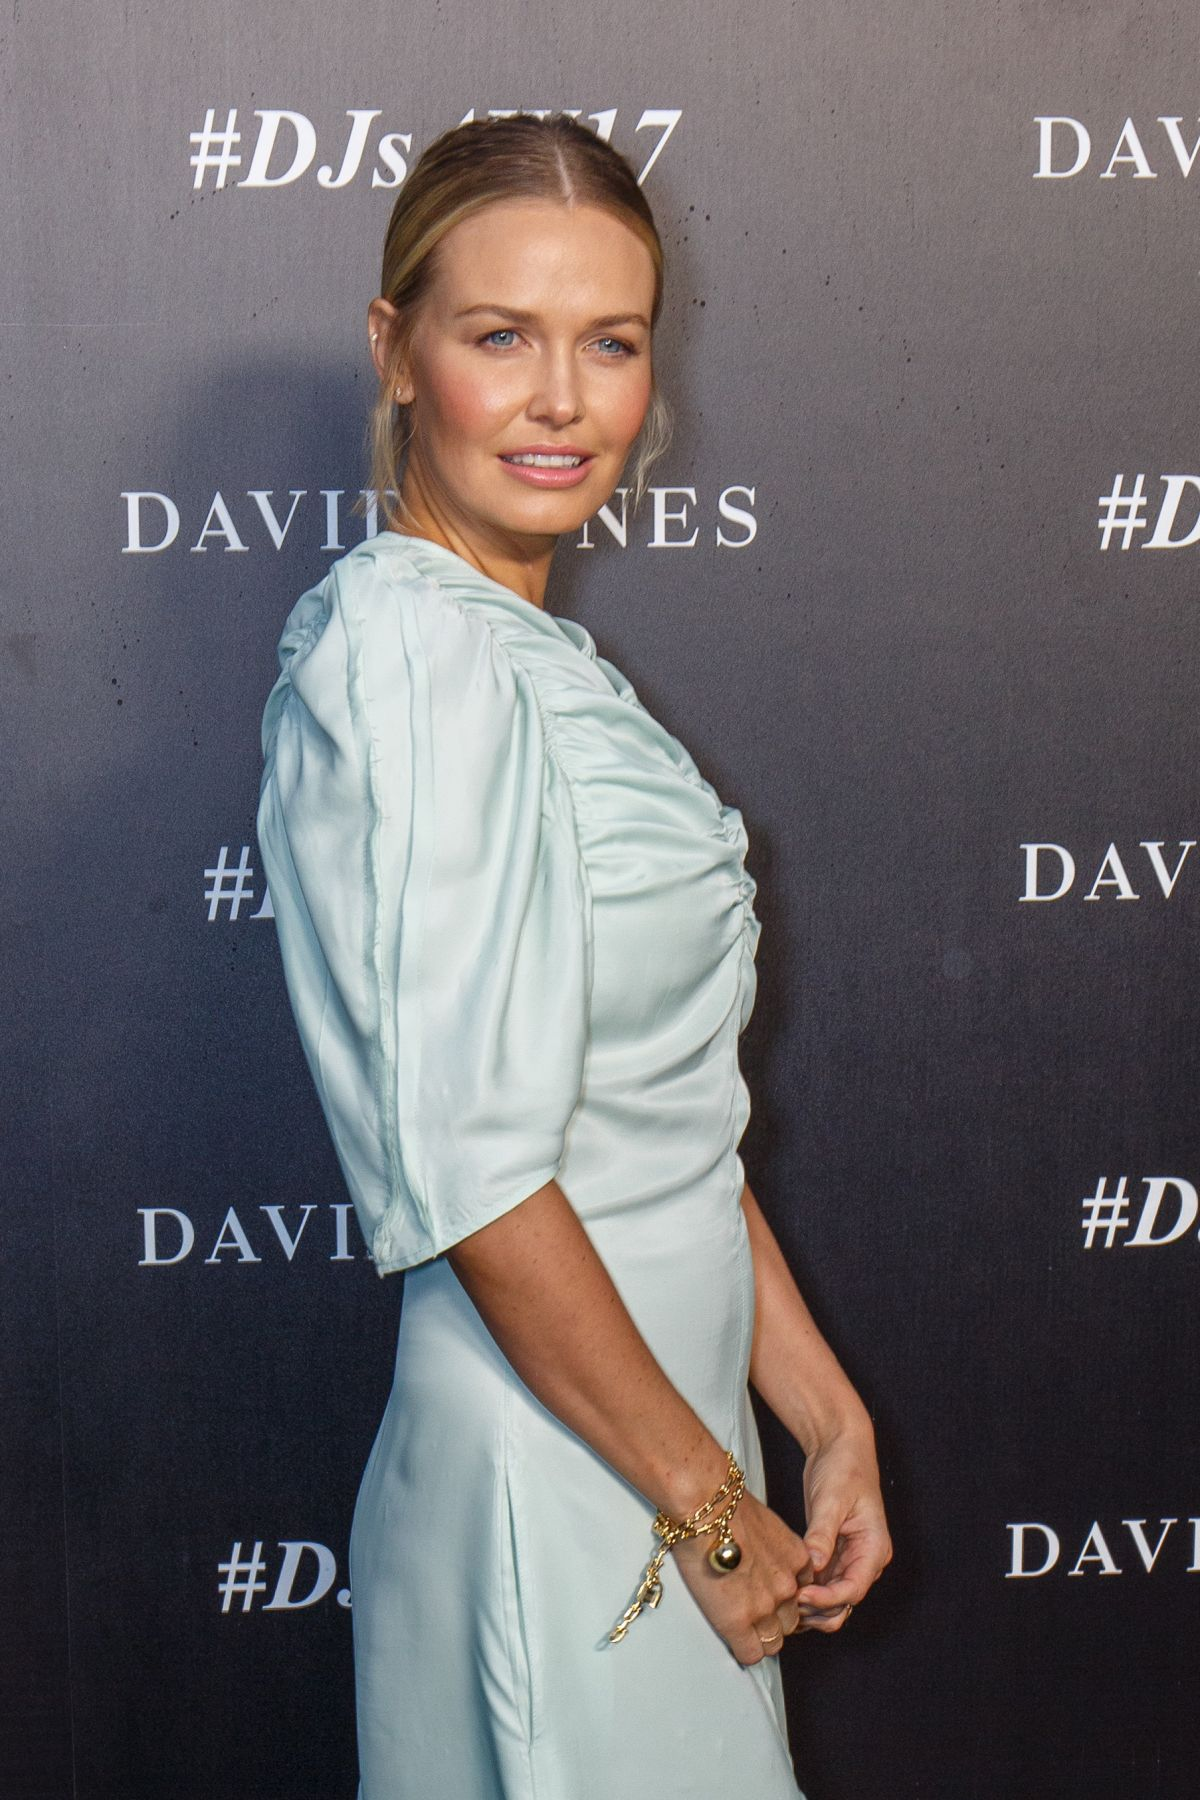 Lara bingle at david jones autumnwinter 2019 collections launch in sydney naked (29 images)